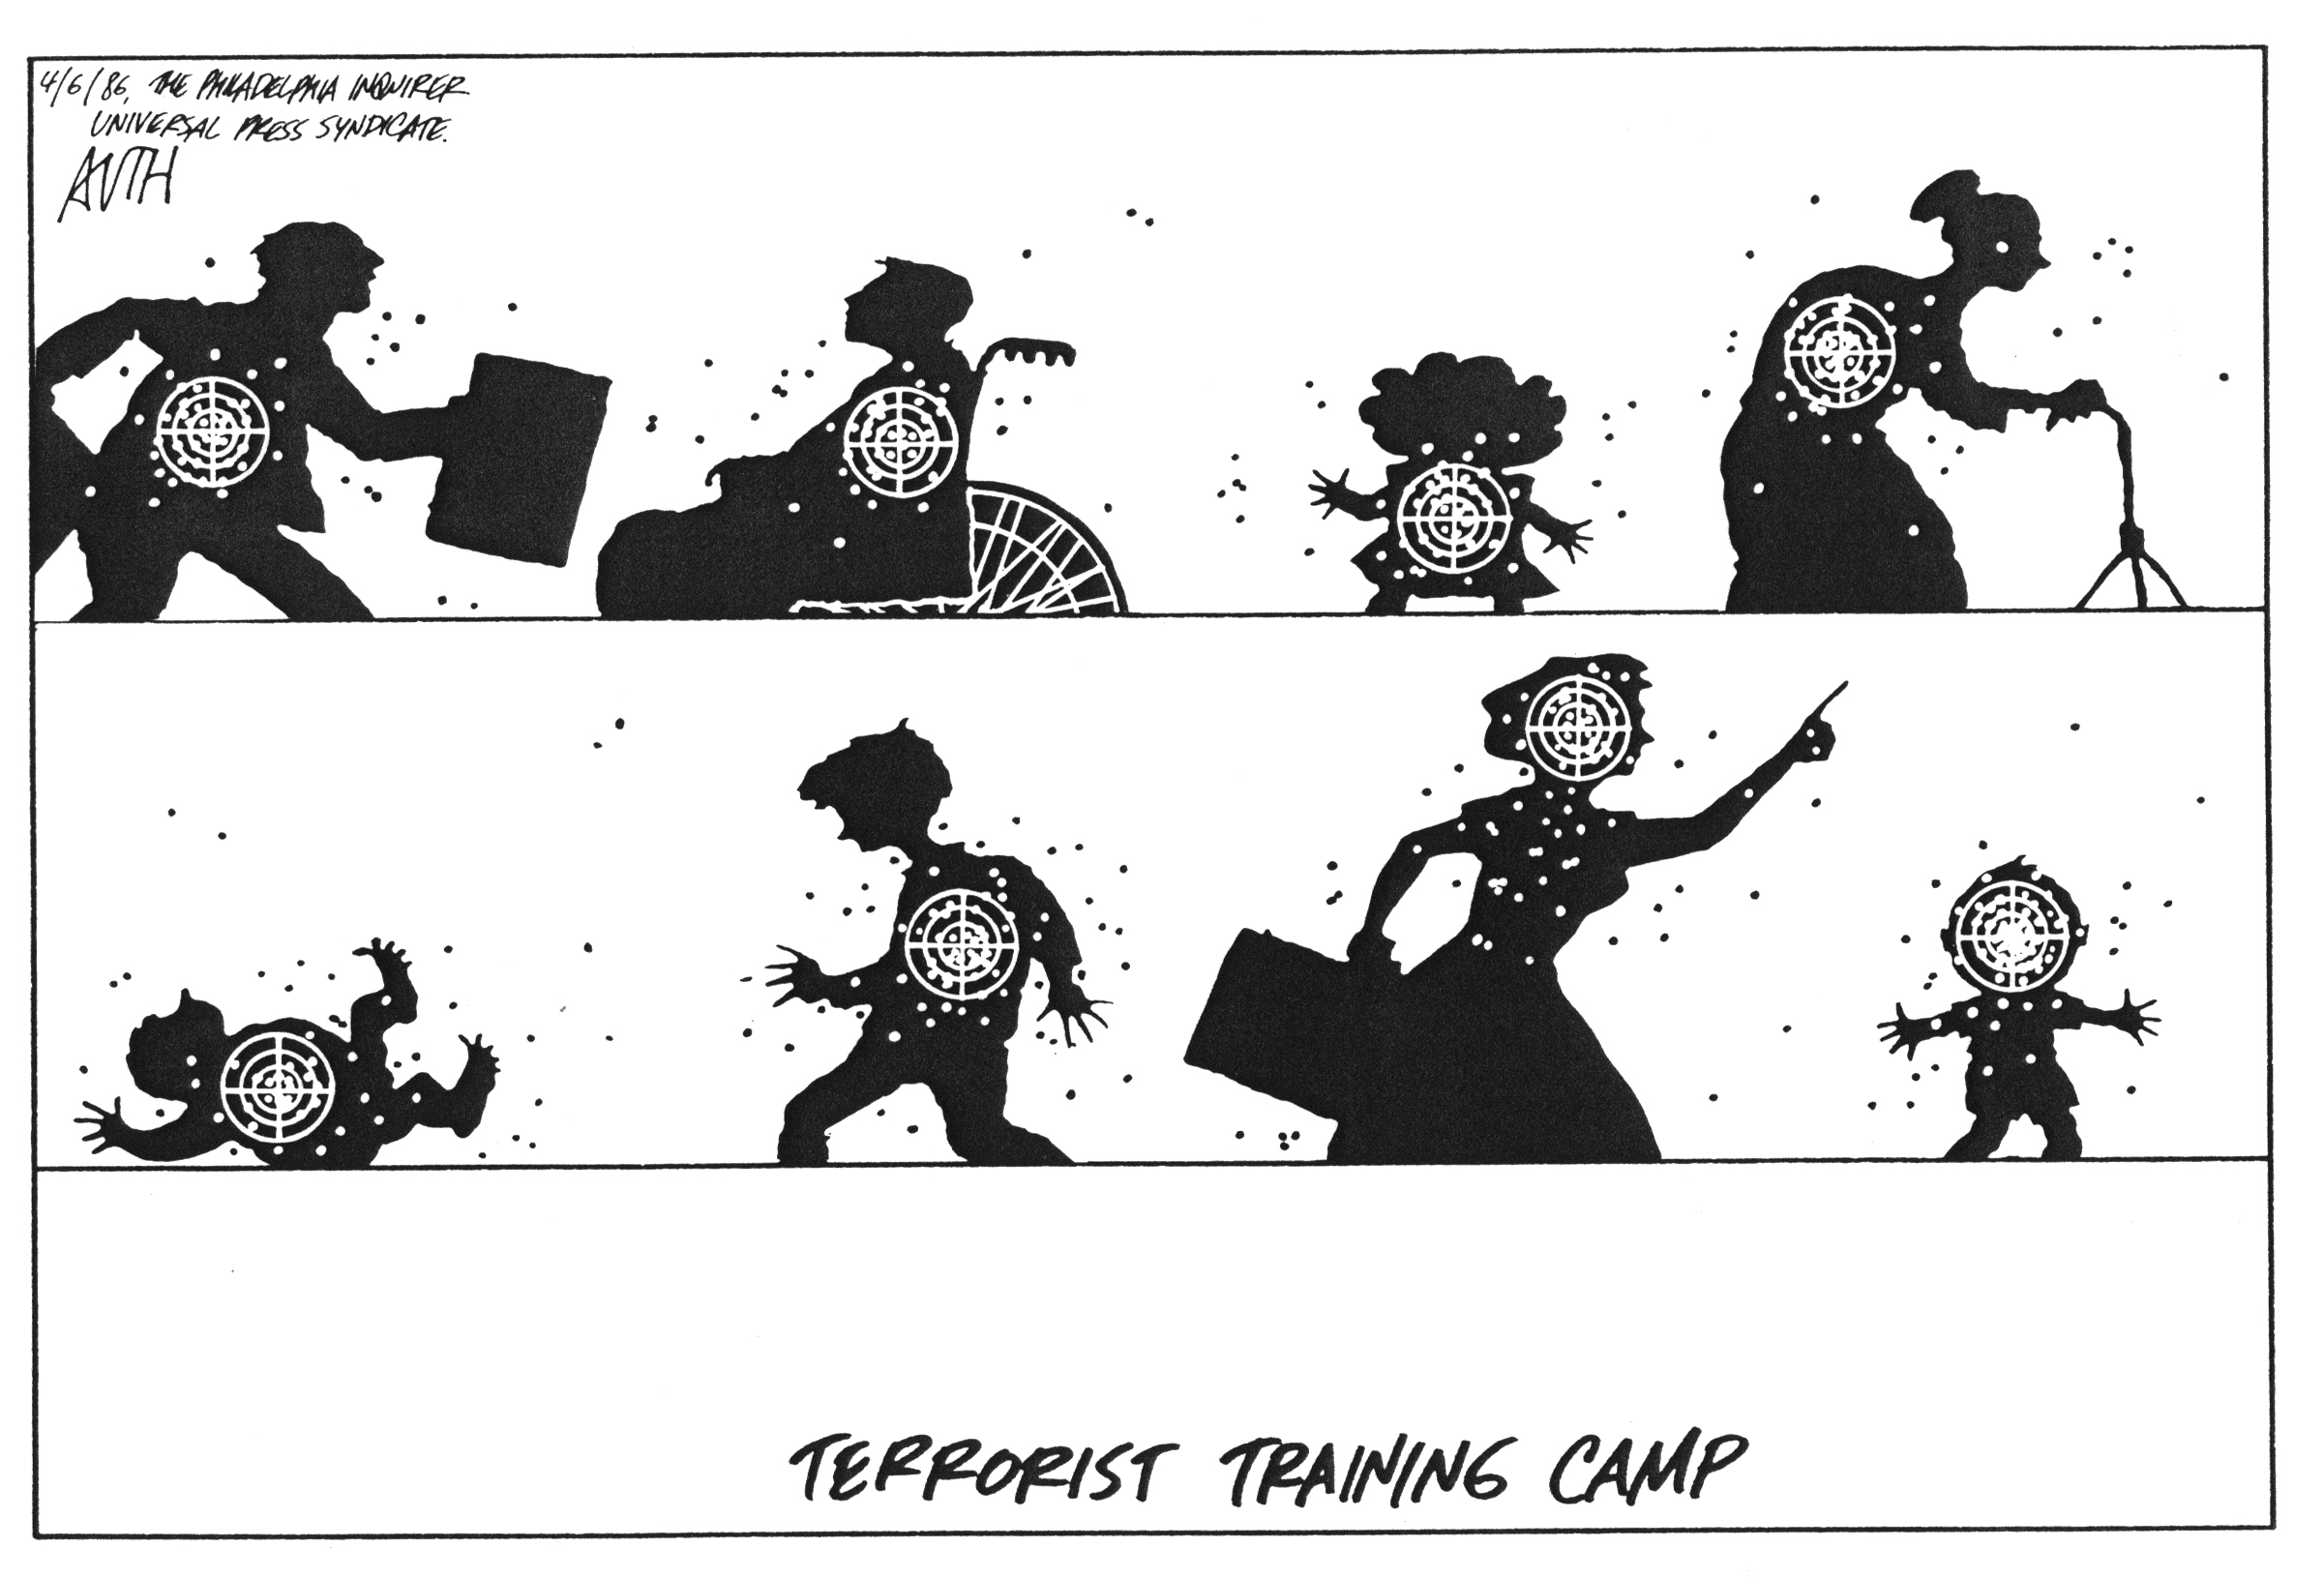 860406-terrorist-training-camp